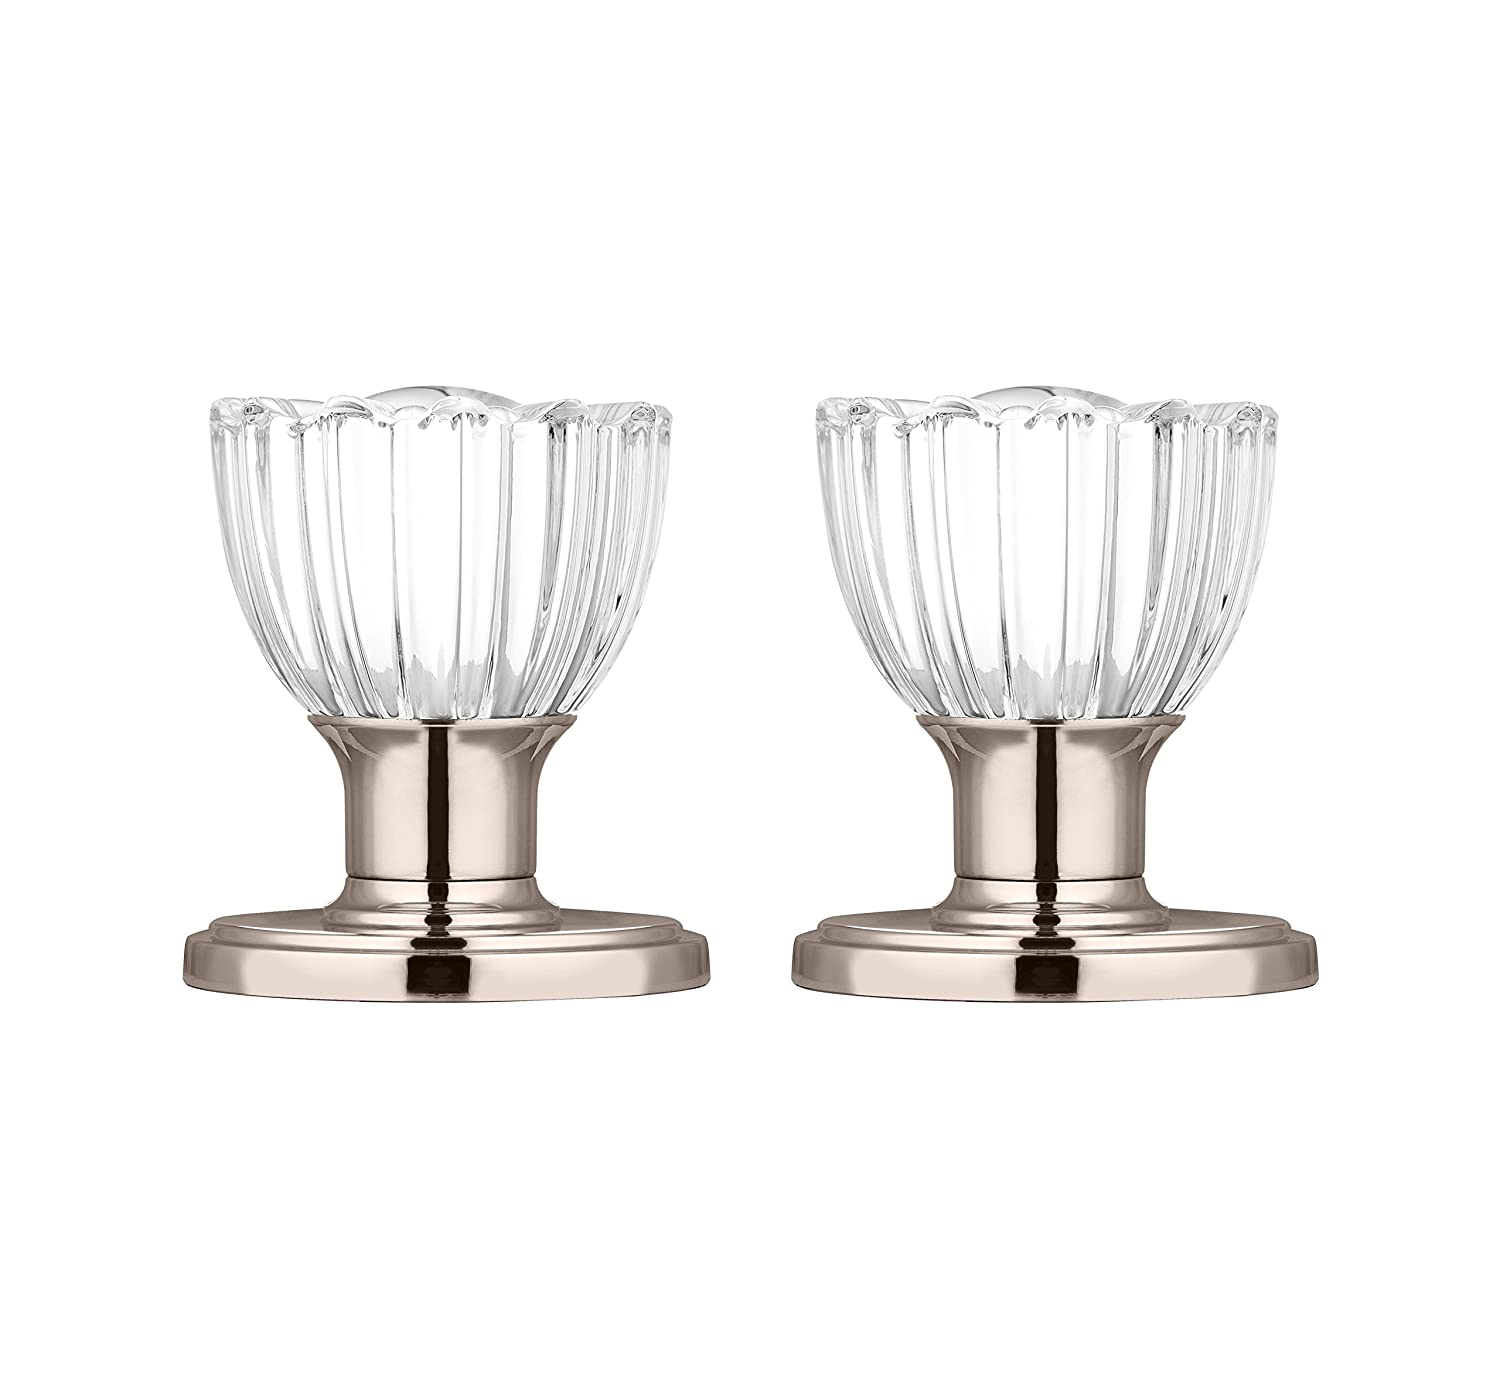 AMG and Enchante Accessories Classic Tulip Crystal Door Knobs with Lock DK08R-PR BRZ Decor Living Venetian Bronze Athena Collection Privacy Function for Bed and Bath